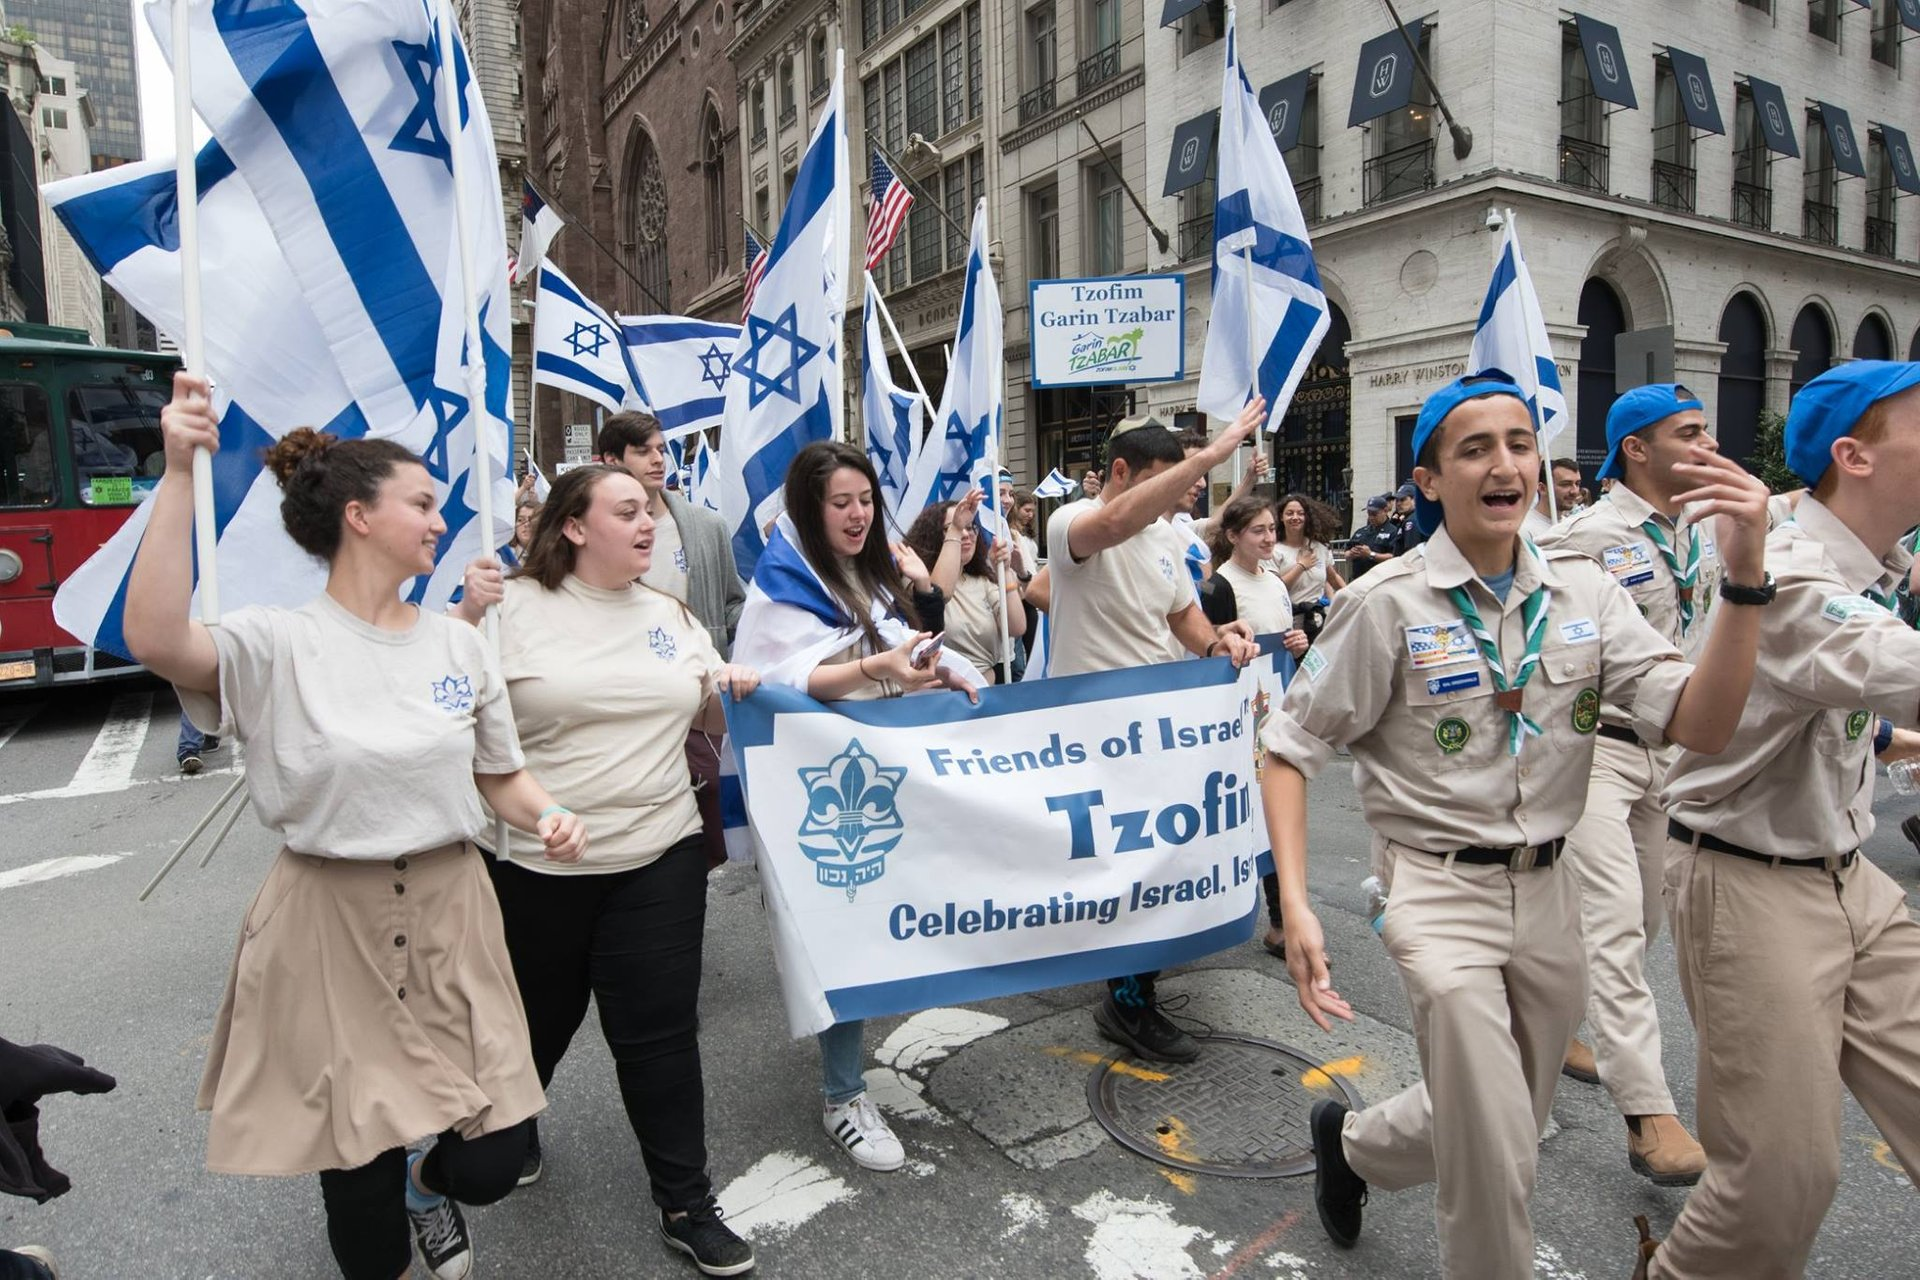 Celebrate Israel Parade in New York - Best Season 2020